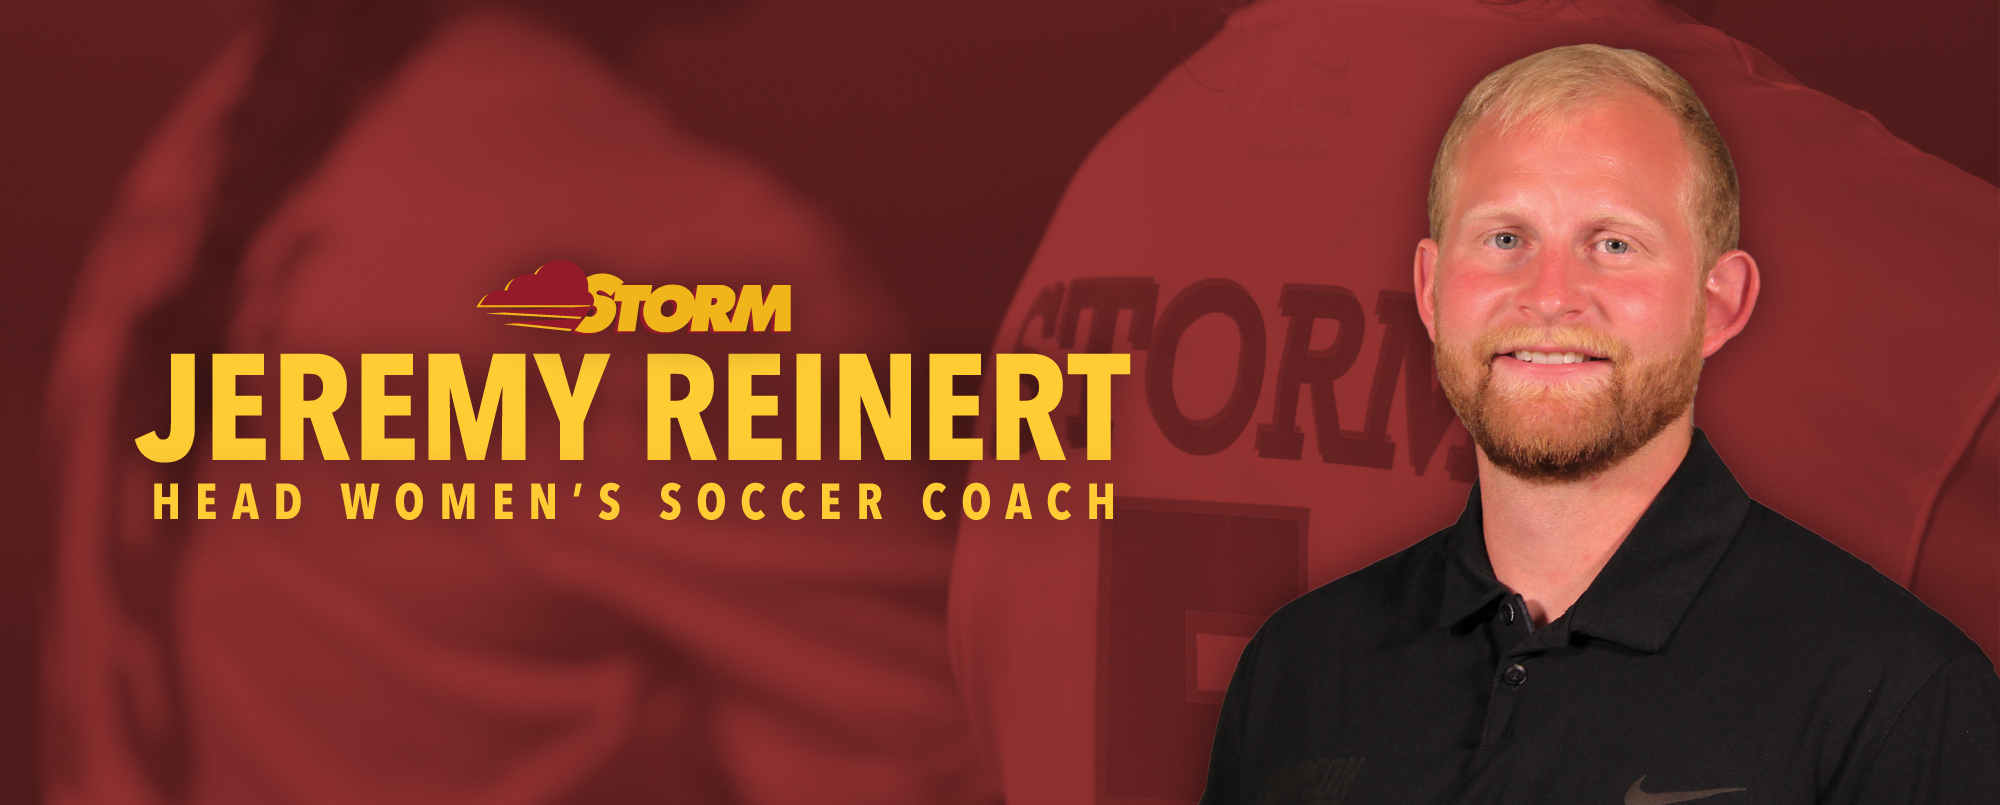 Jeremy Reinert has been hired as Simpson's head women's soccer coach.